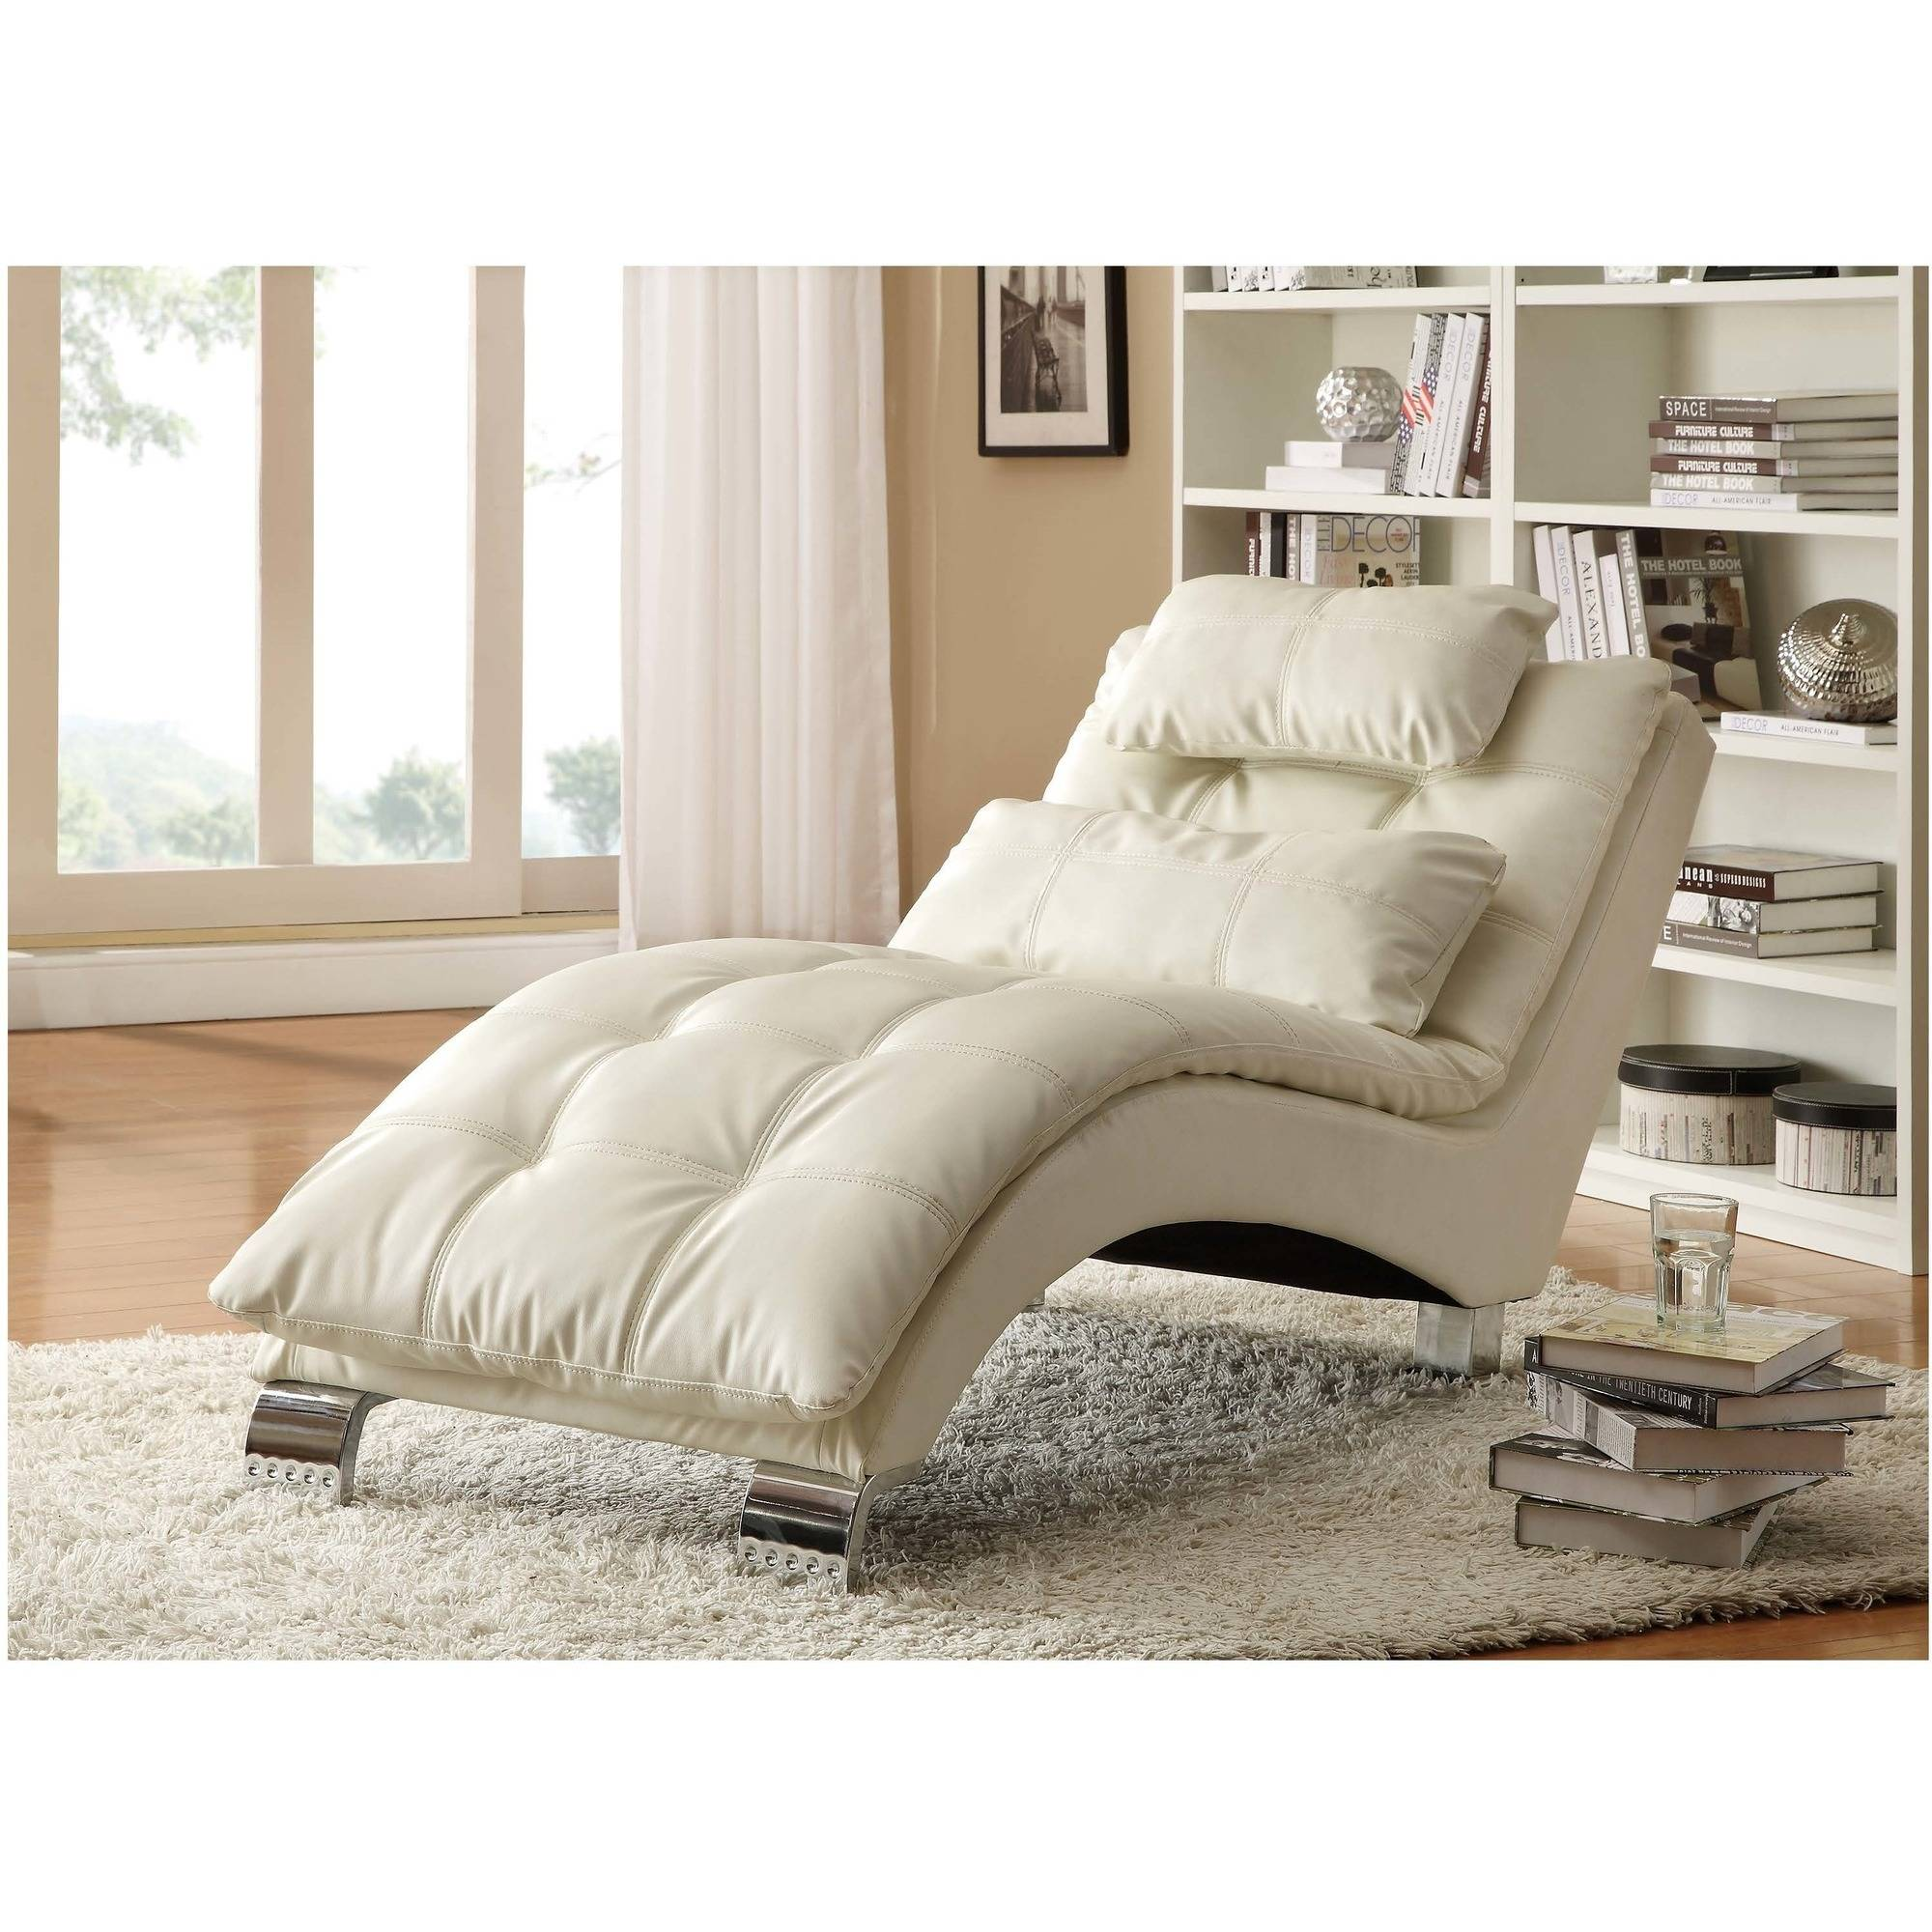 white leather chaise accent yoga chair chaise white faux leather white sex 21984 | 81b4d984 7a35 4e10 bd68 c9869bf981a3 1.685a7e79b20dd96ab77612f21ea81757